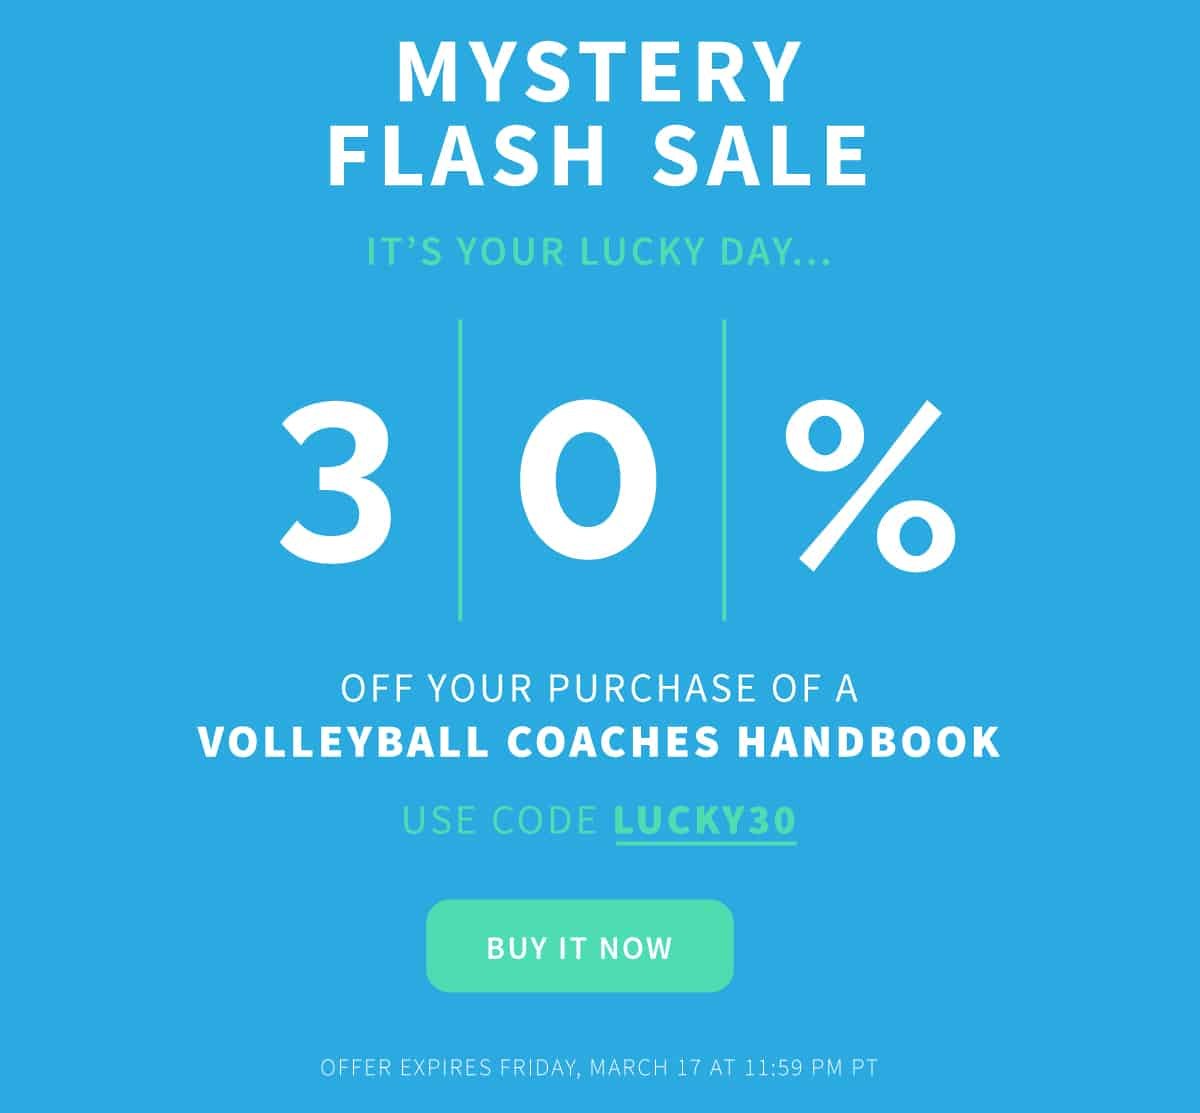 You've won 30% off the Volleyball Coaches Handbook!